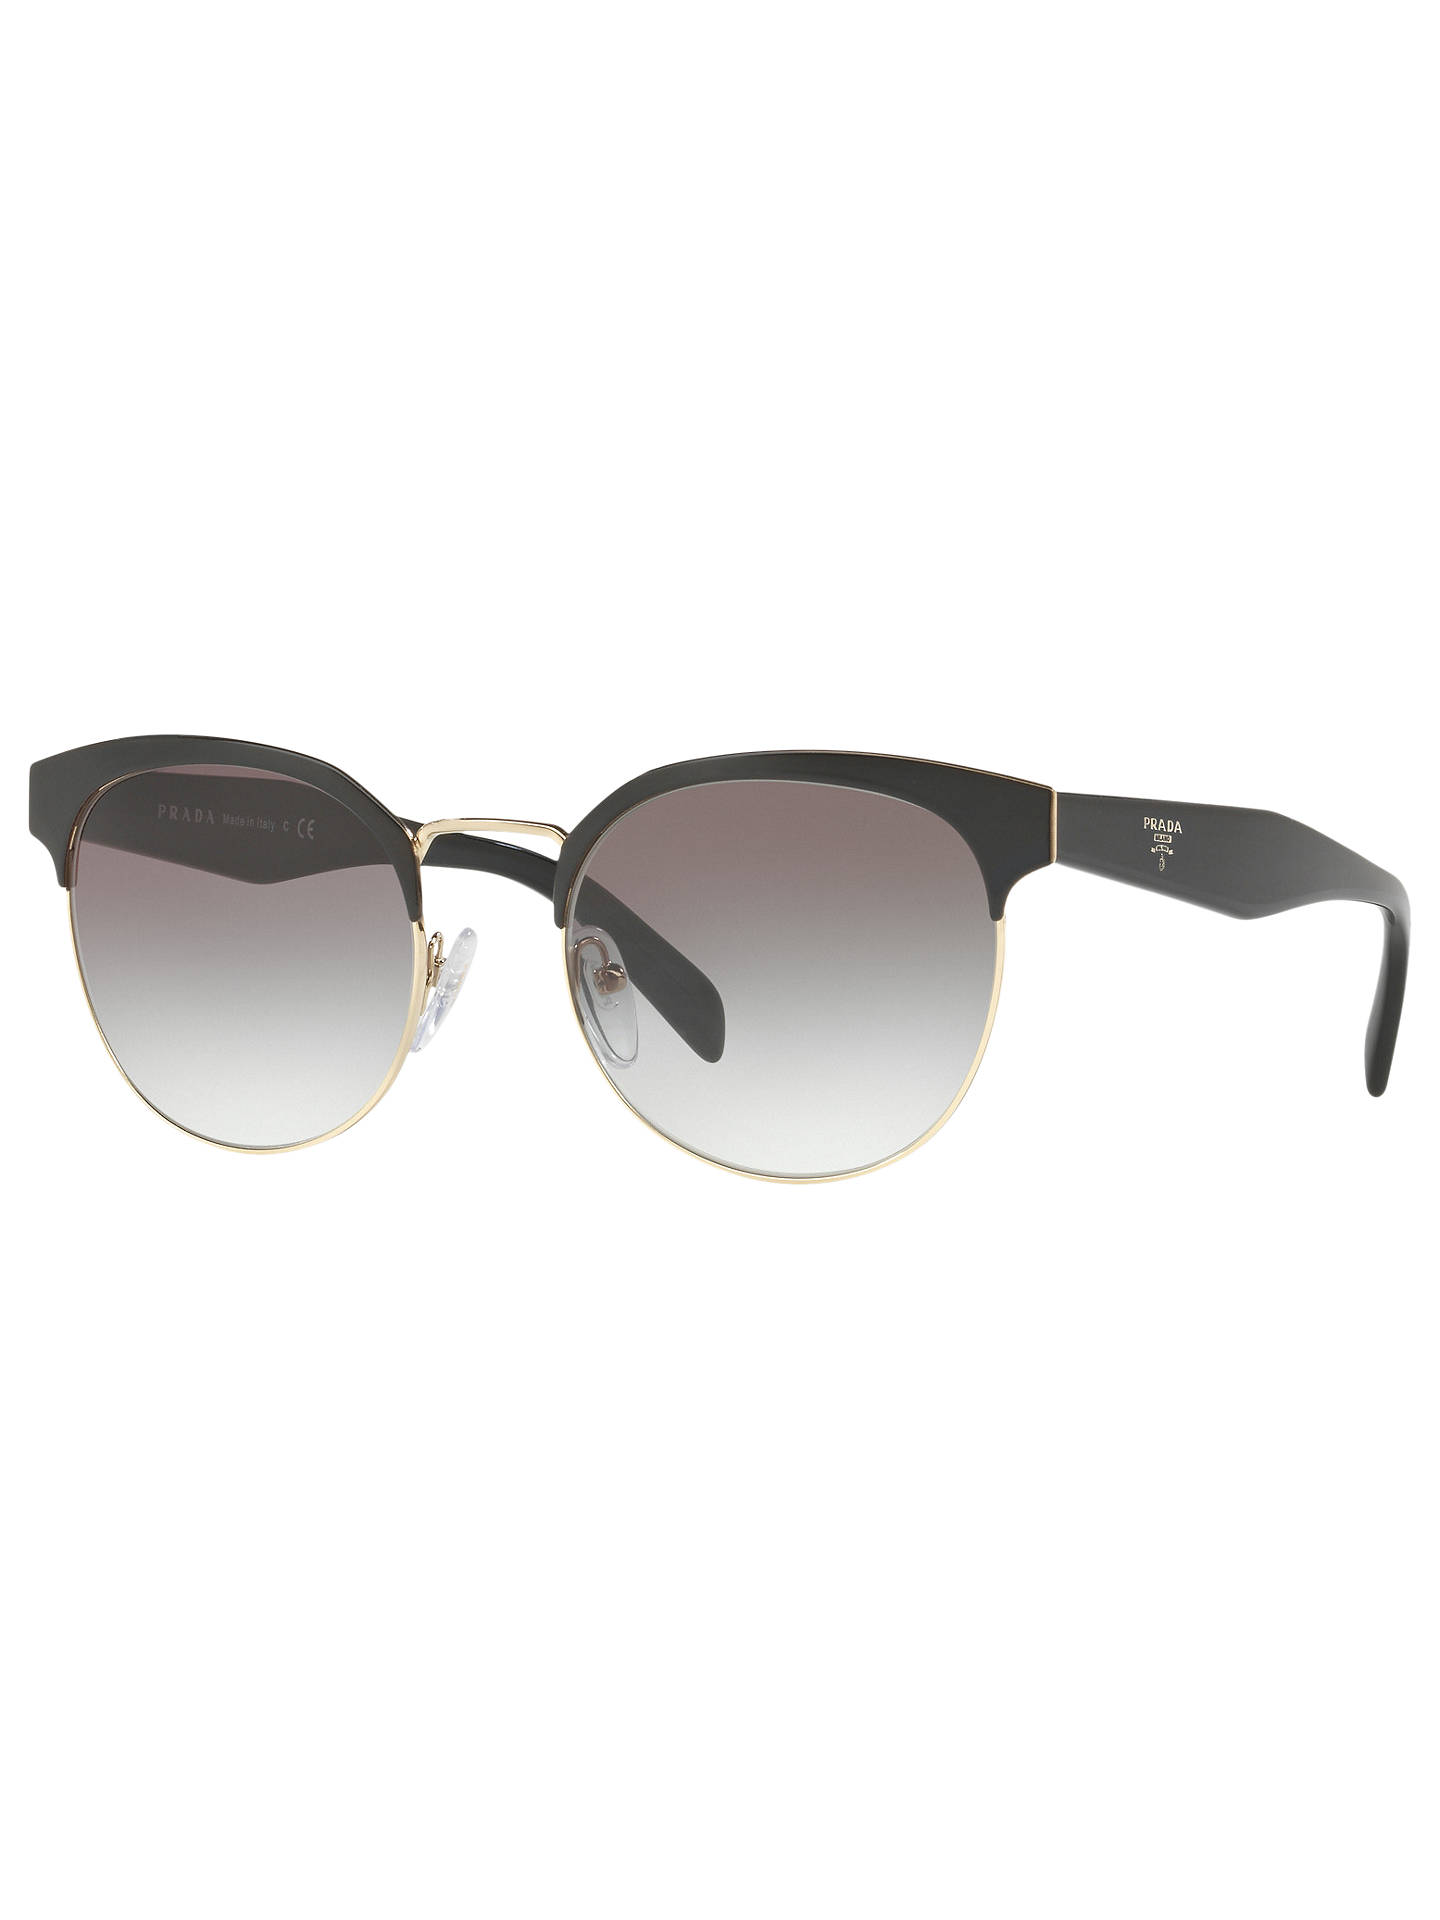 17c9a3b05ec91 Prada PR 61TS Oval Sunglasses at John Lewis   Partners